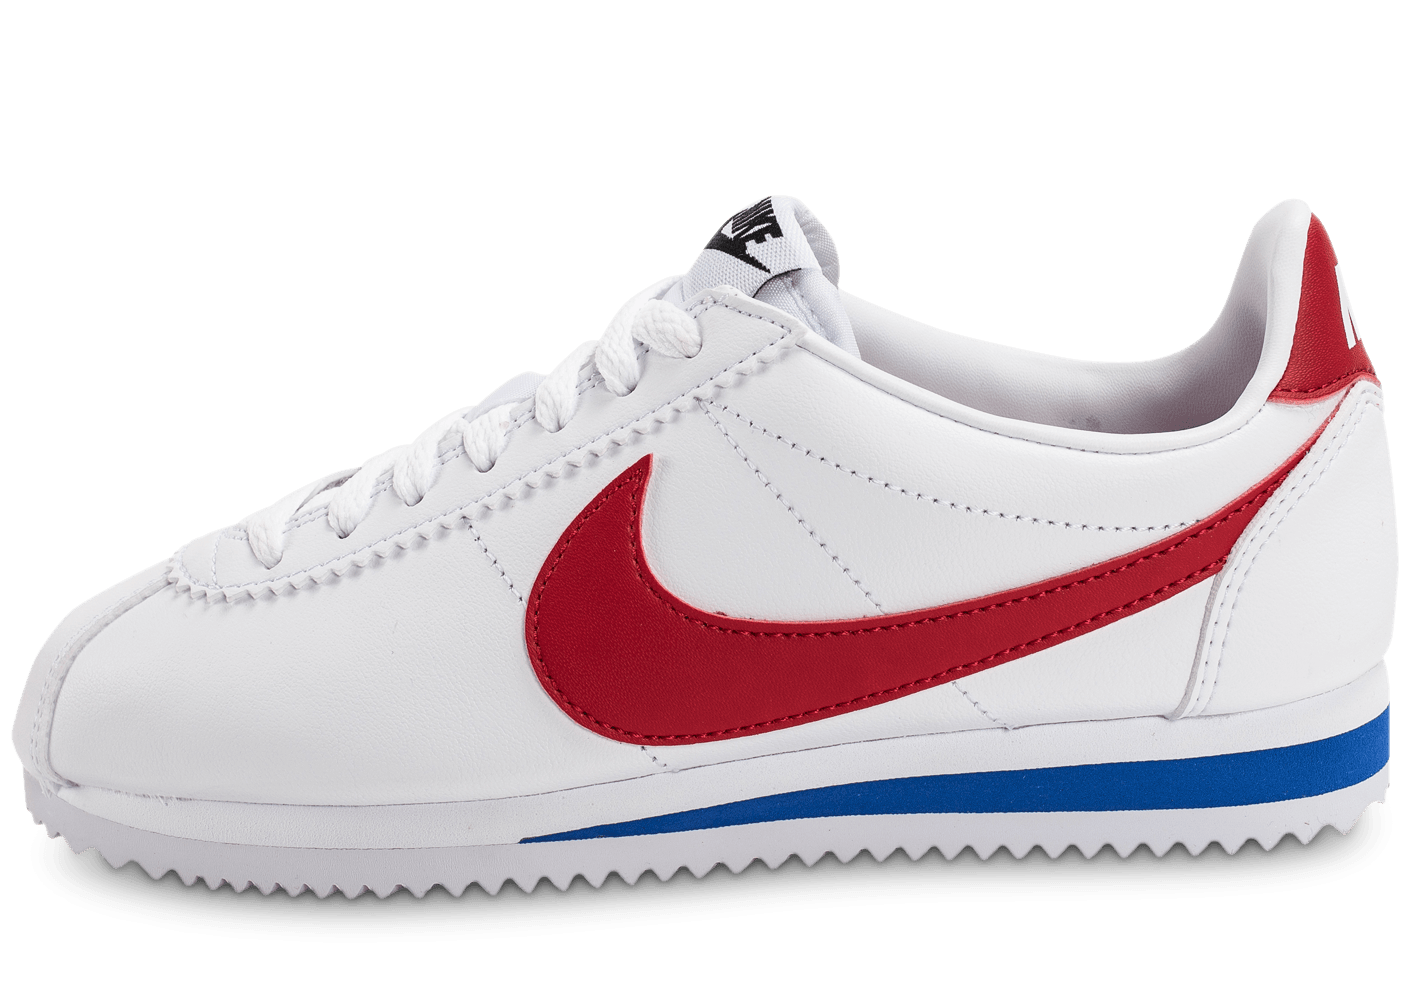 369ae013551a6 ... enfant 9b108 46546  order nike classic cortez leather chaussures black  friday chaussures et baskets chausport fb84a 1f5a4